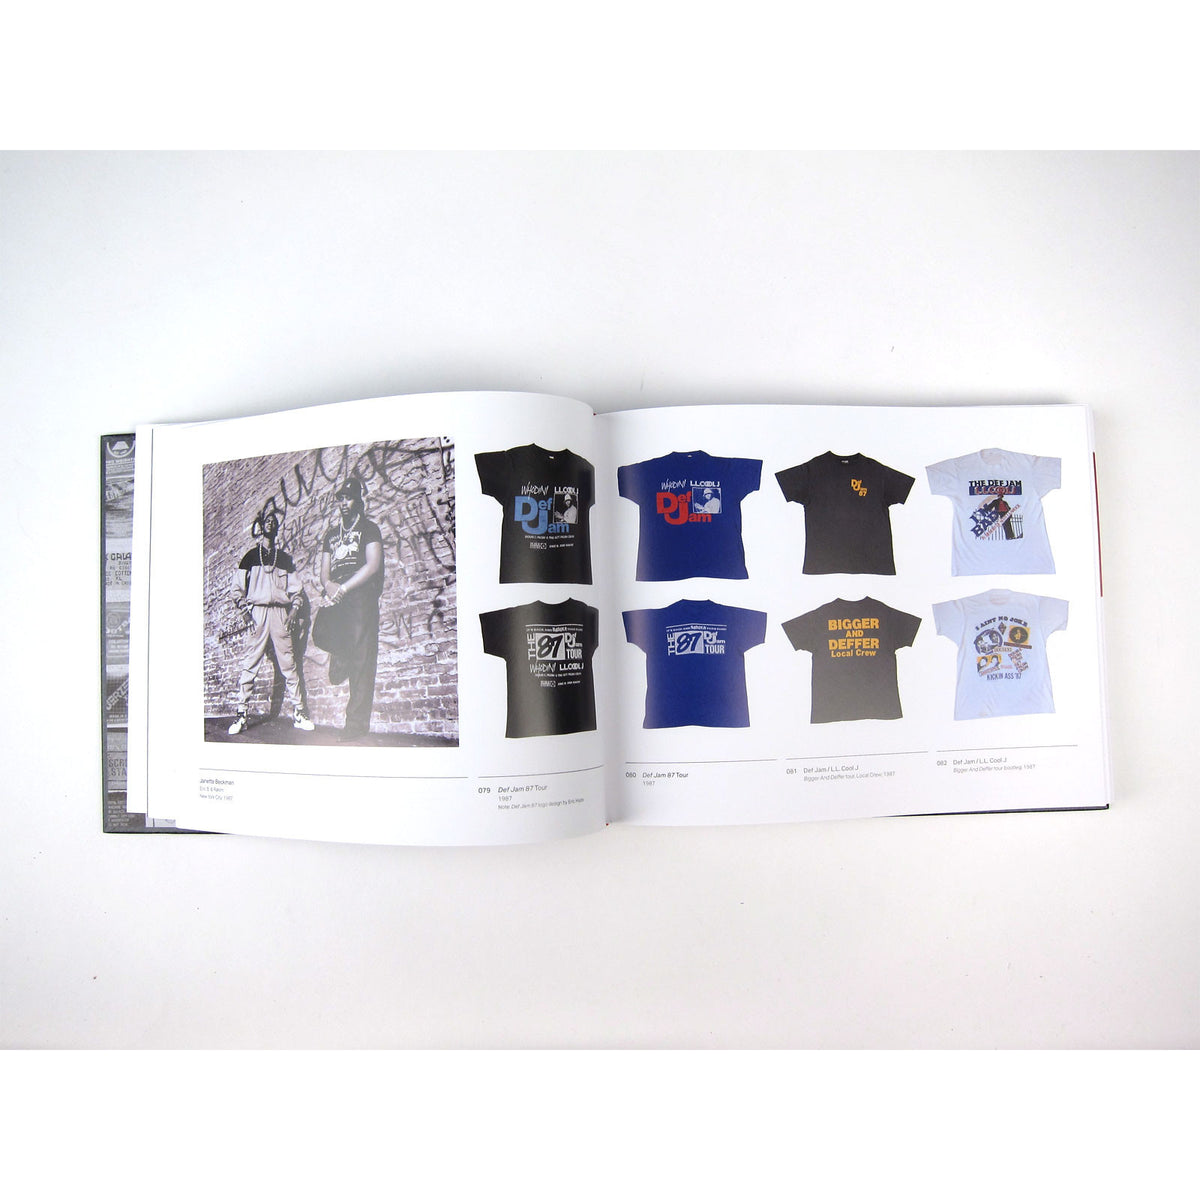 DJ Ross One: Rap Tees - A Collection of Hip-Hop T-Shirts 1980-1999 Book - Signed